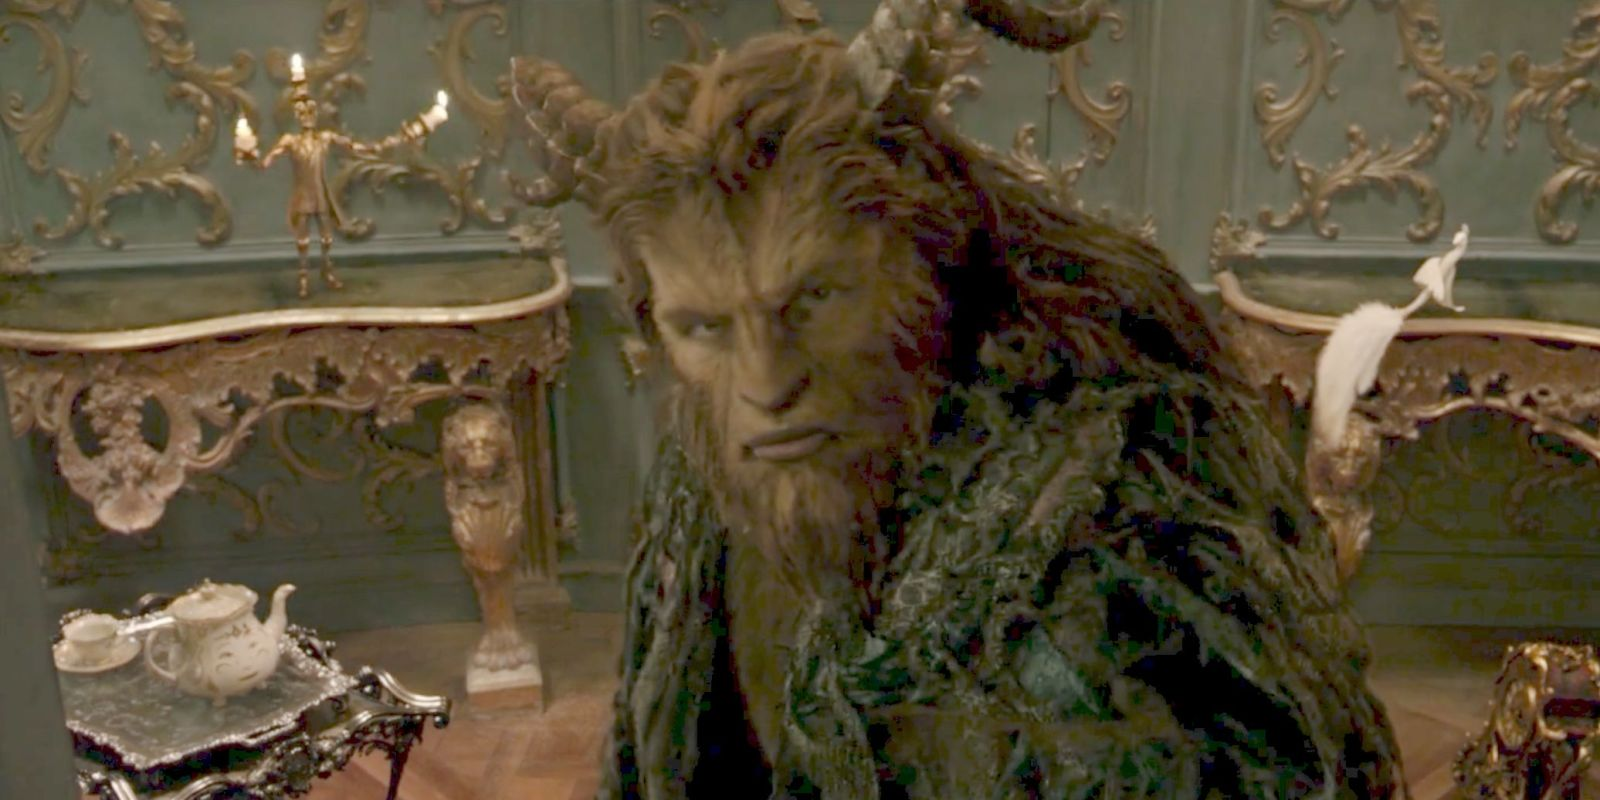 Original Beauty and the Beast writer isn't a fan of the Disney remake